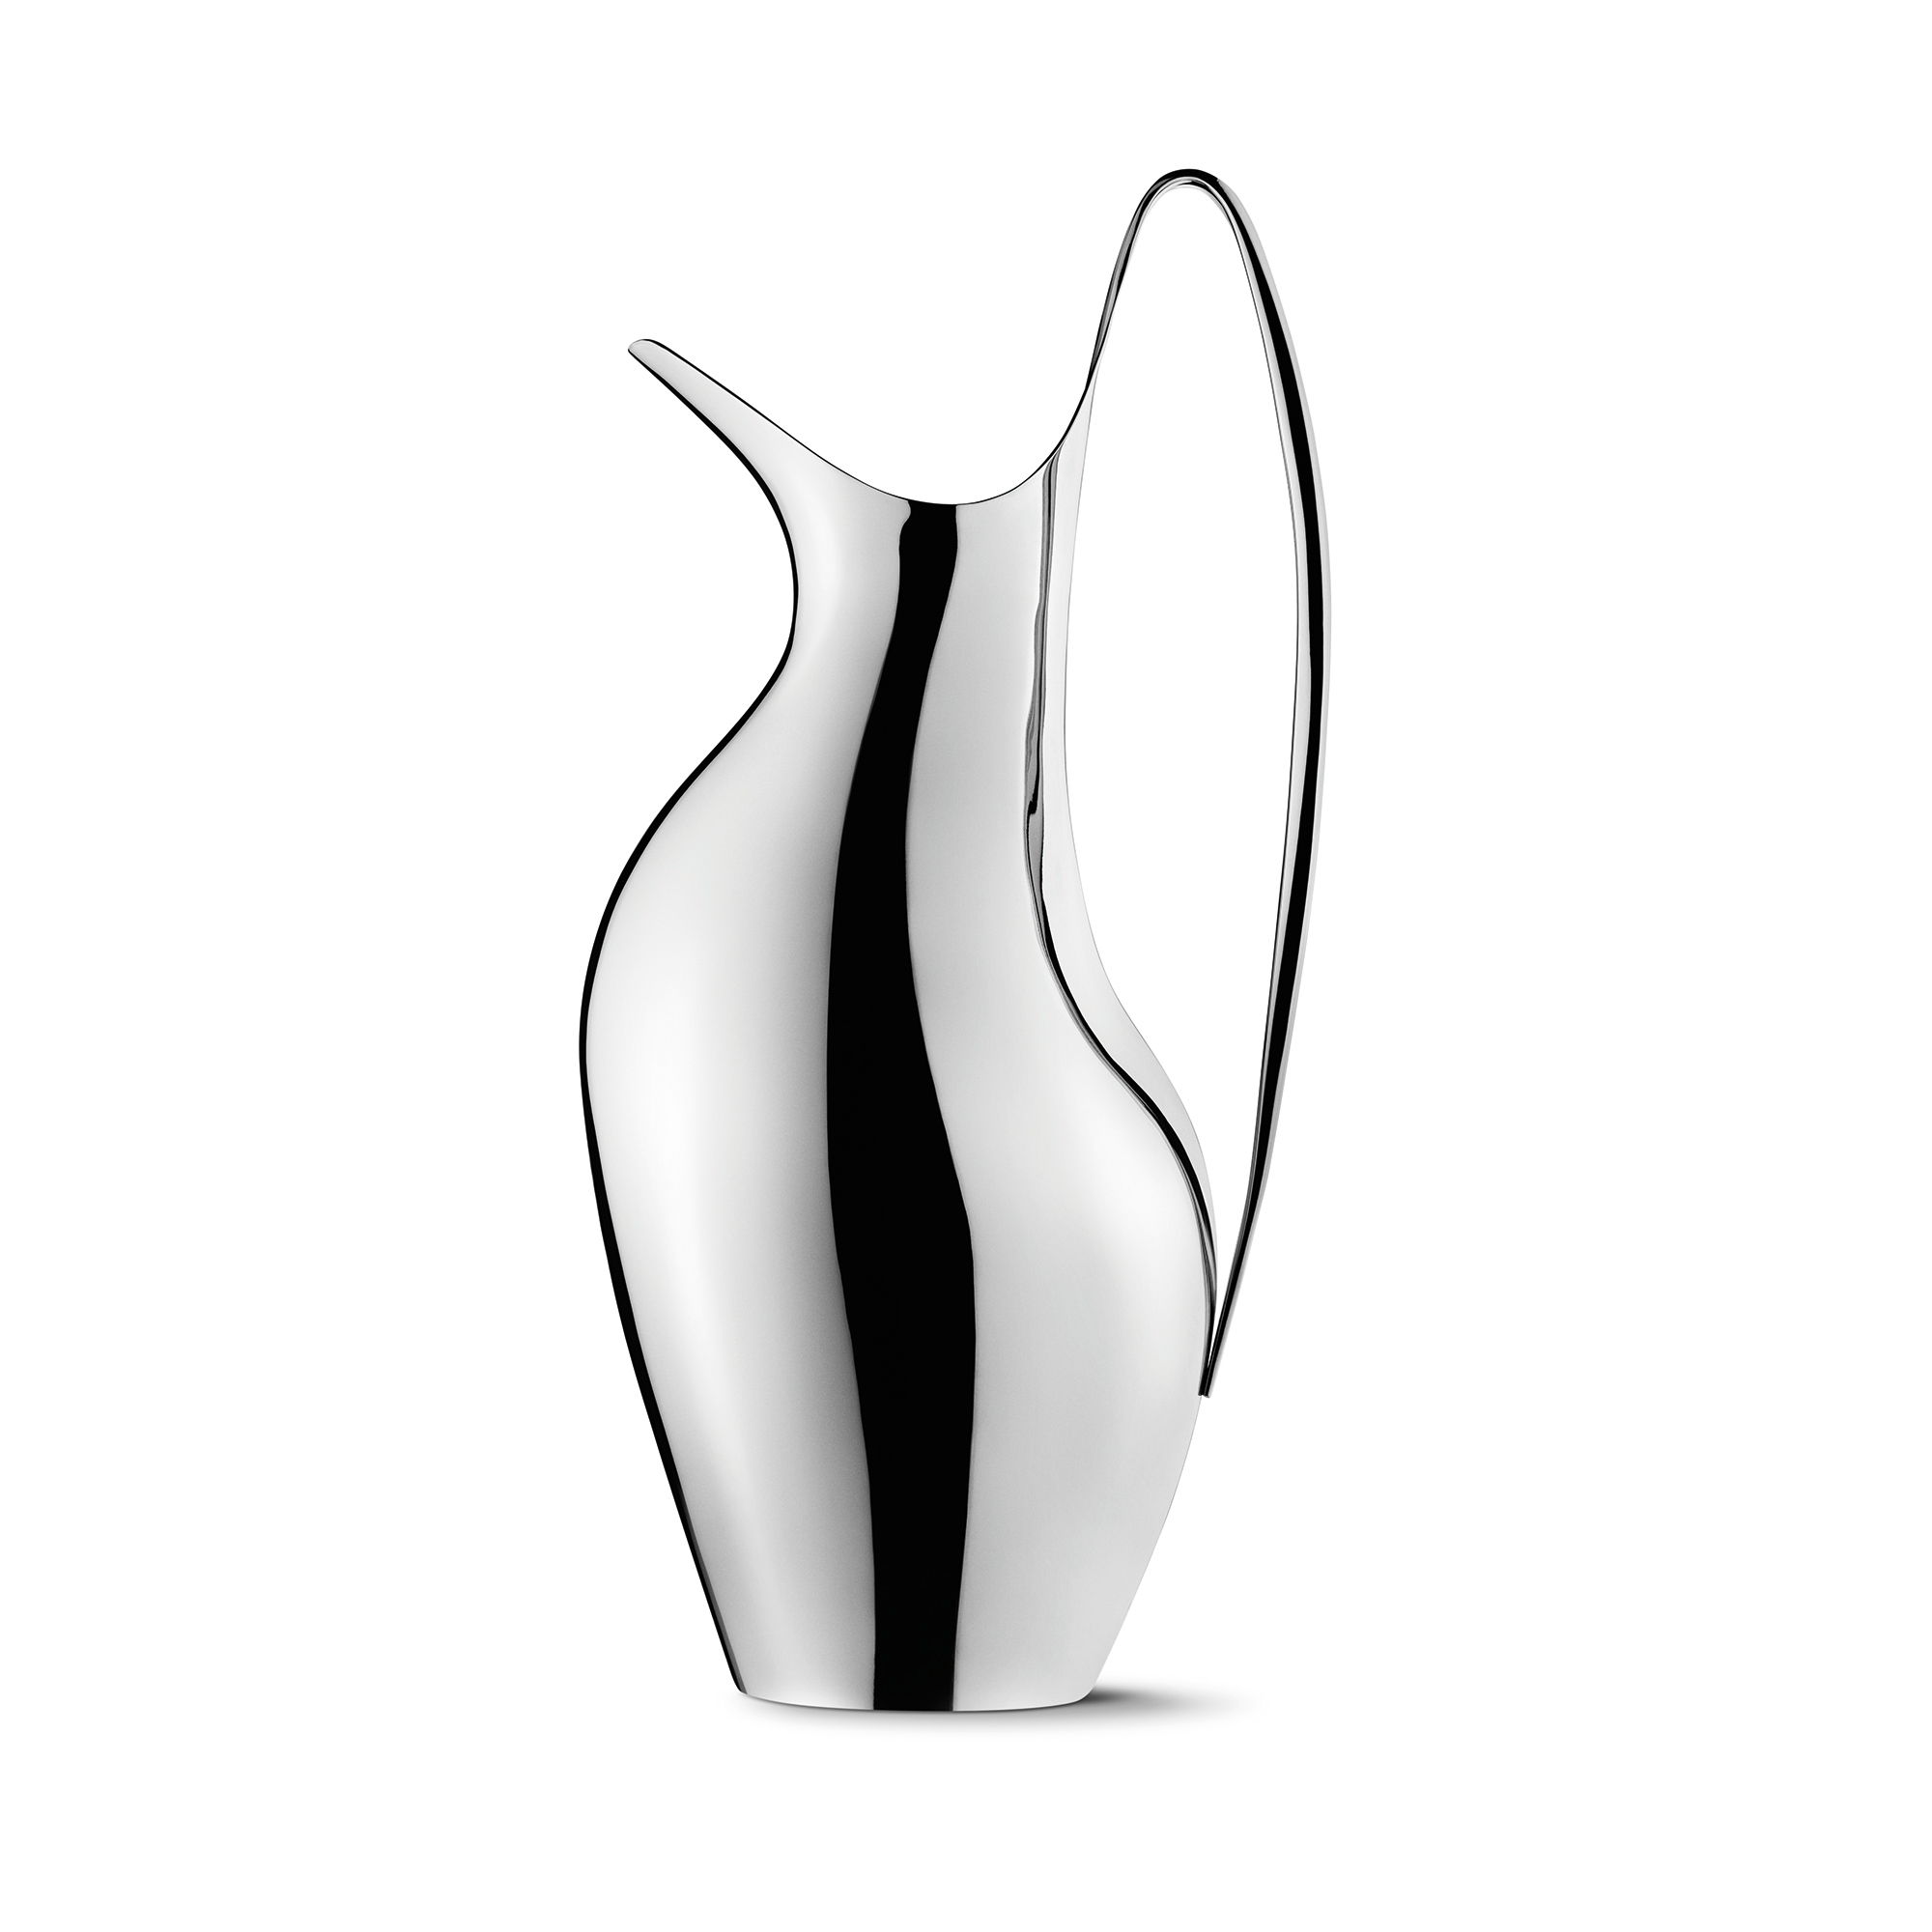 Georg Jensen Henning Koppel Pitchers